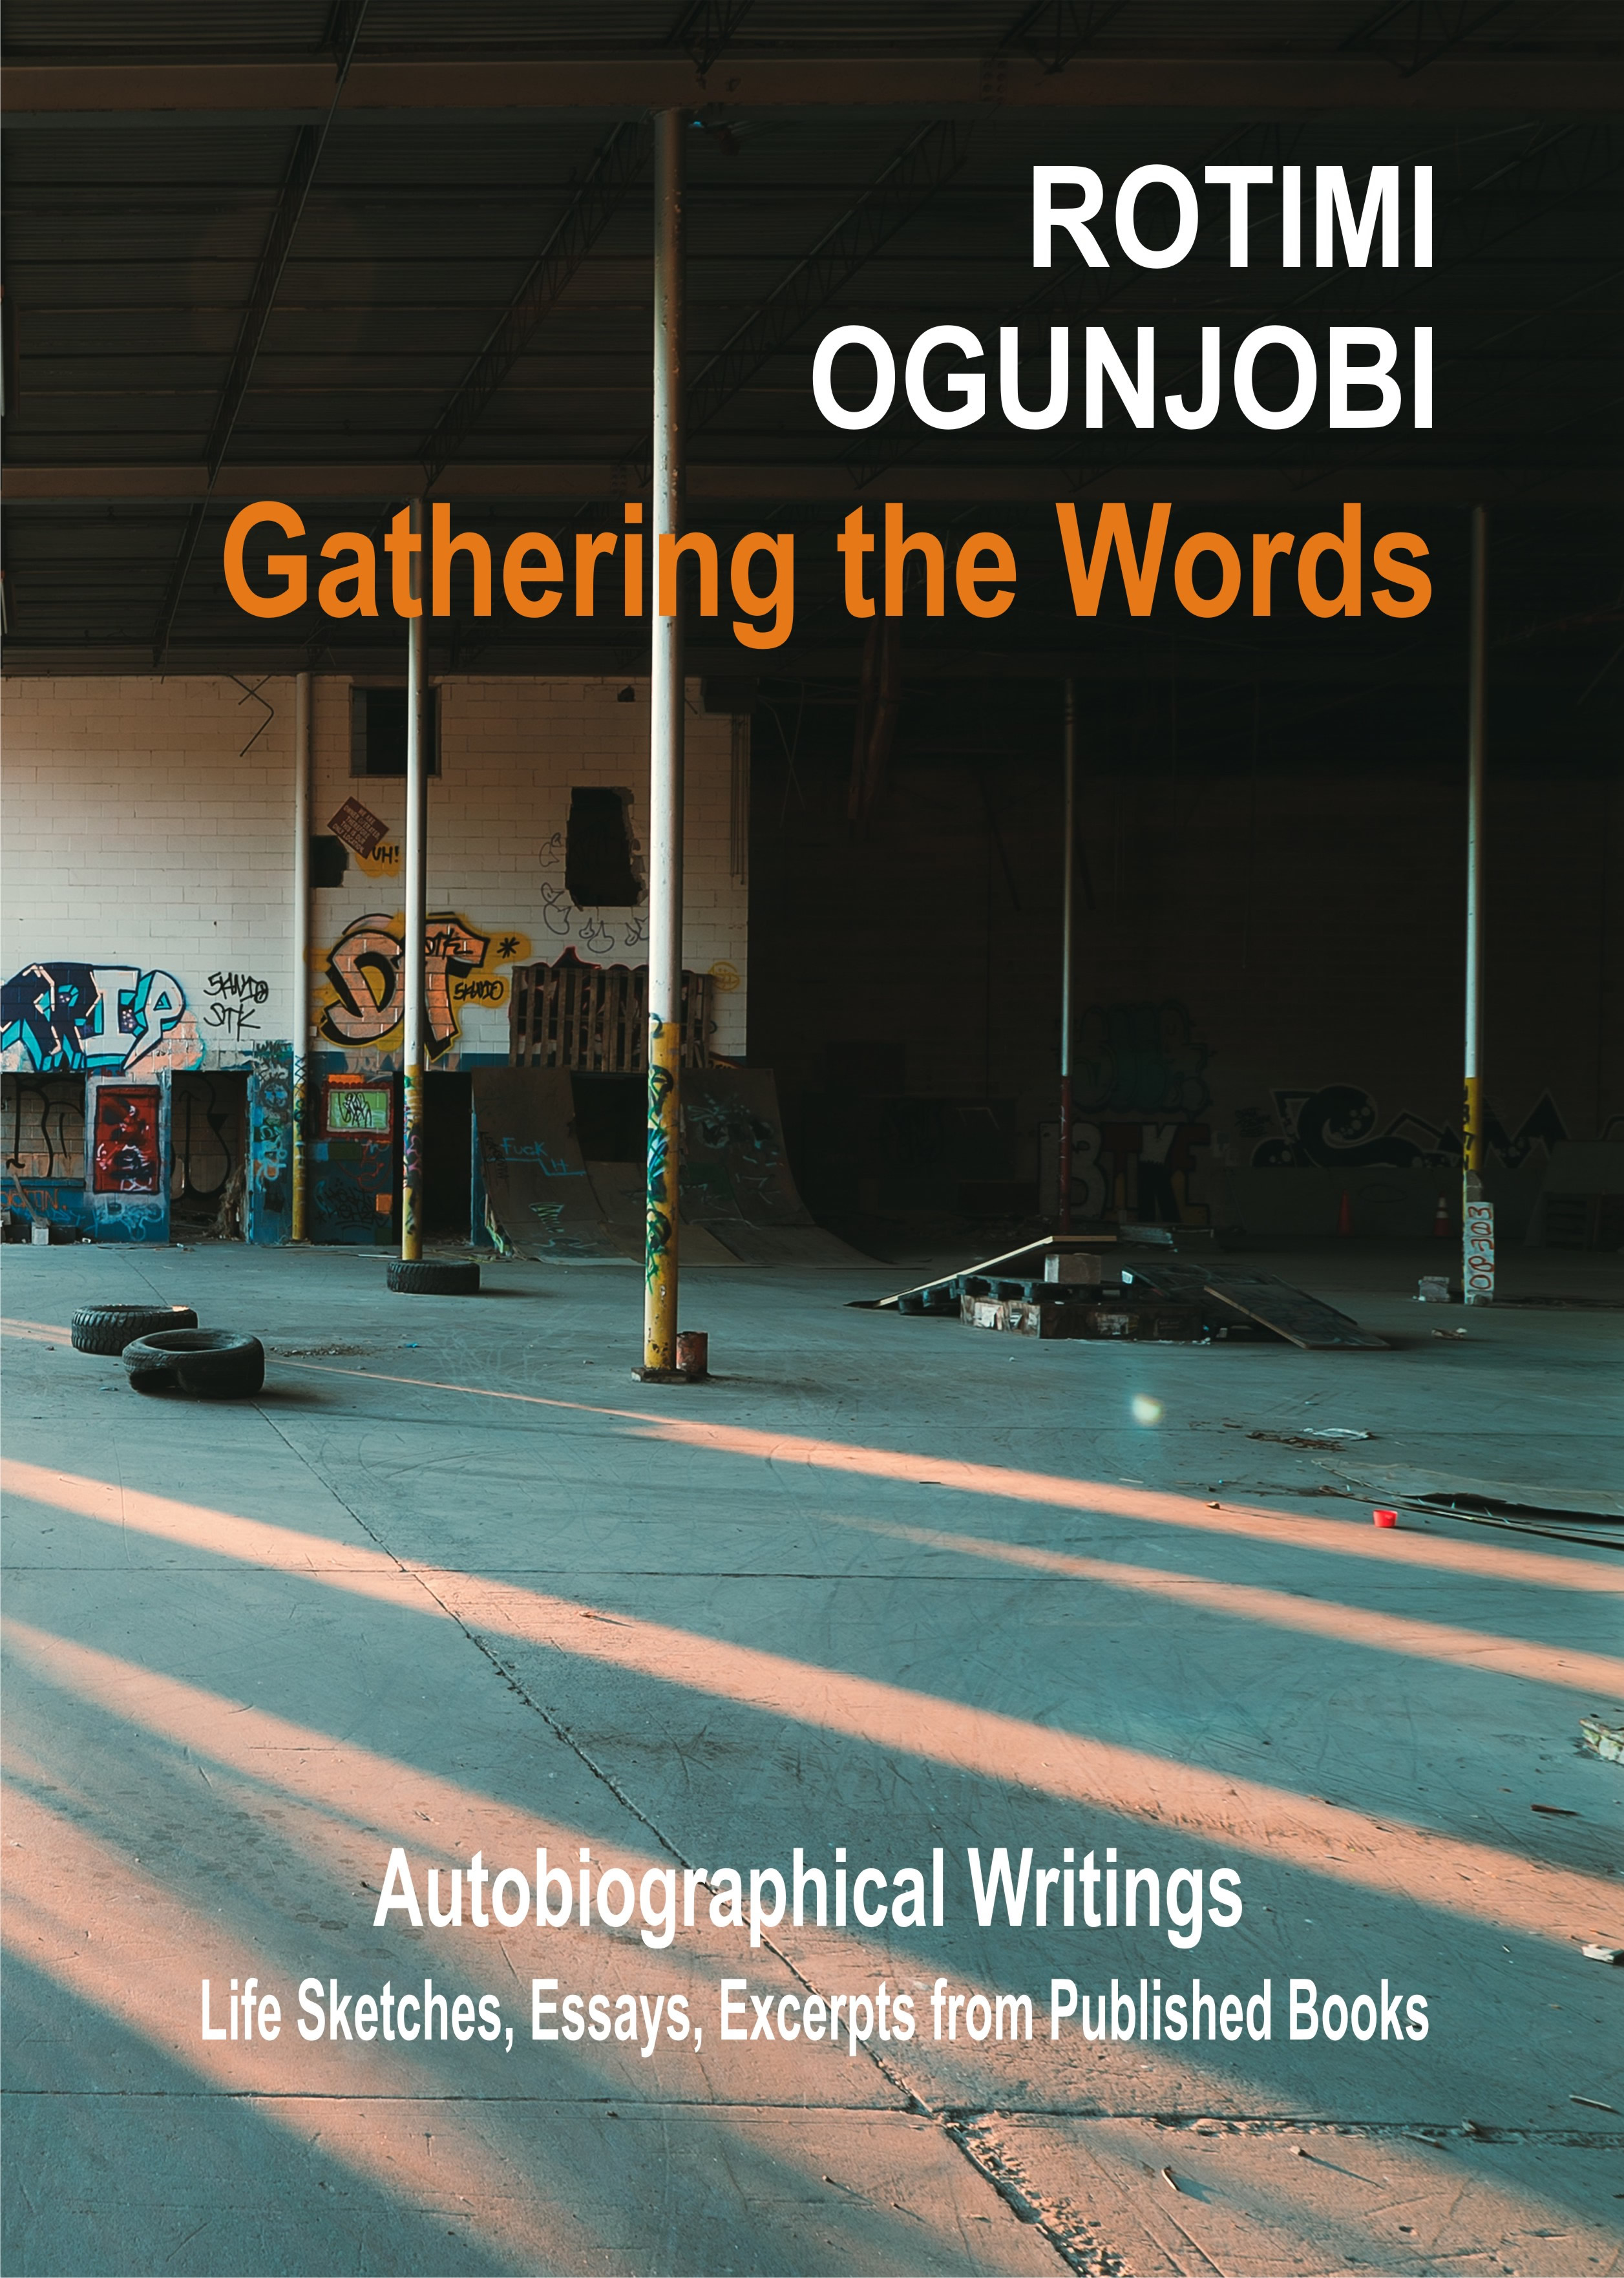 Gathering the Words - book description 1